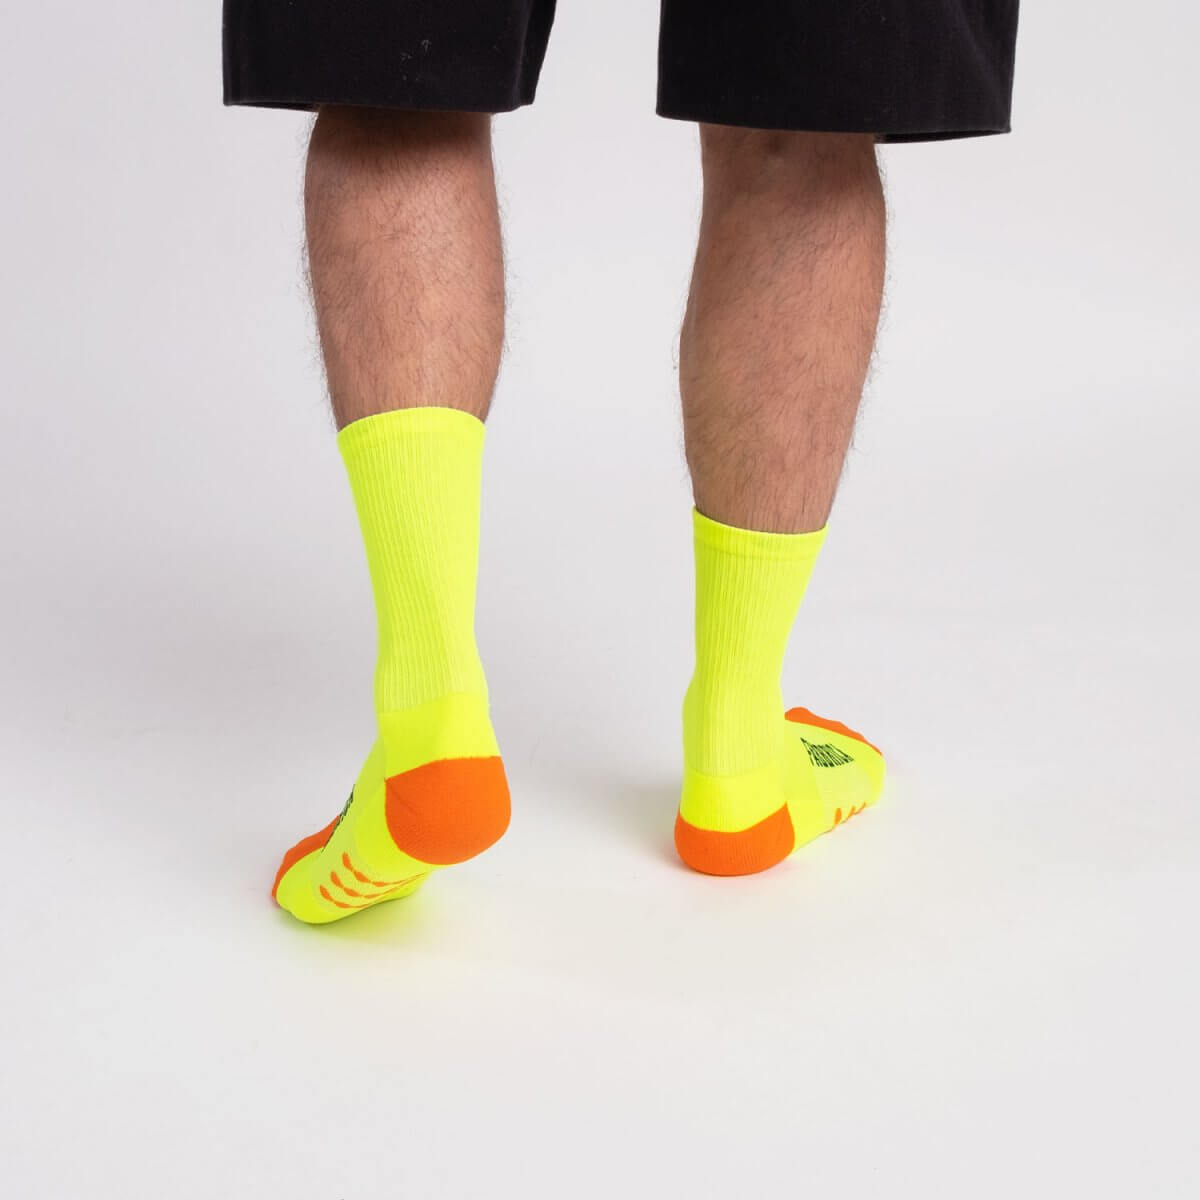 calze-fluo-gialle-qskin-fabbrica